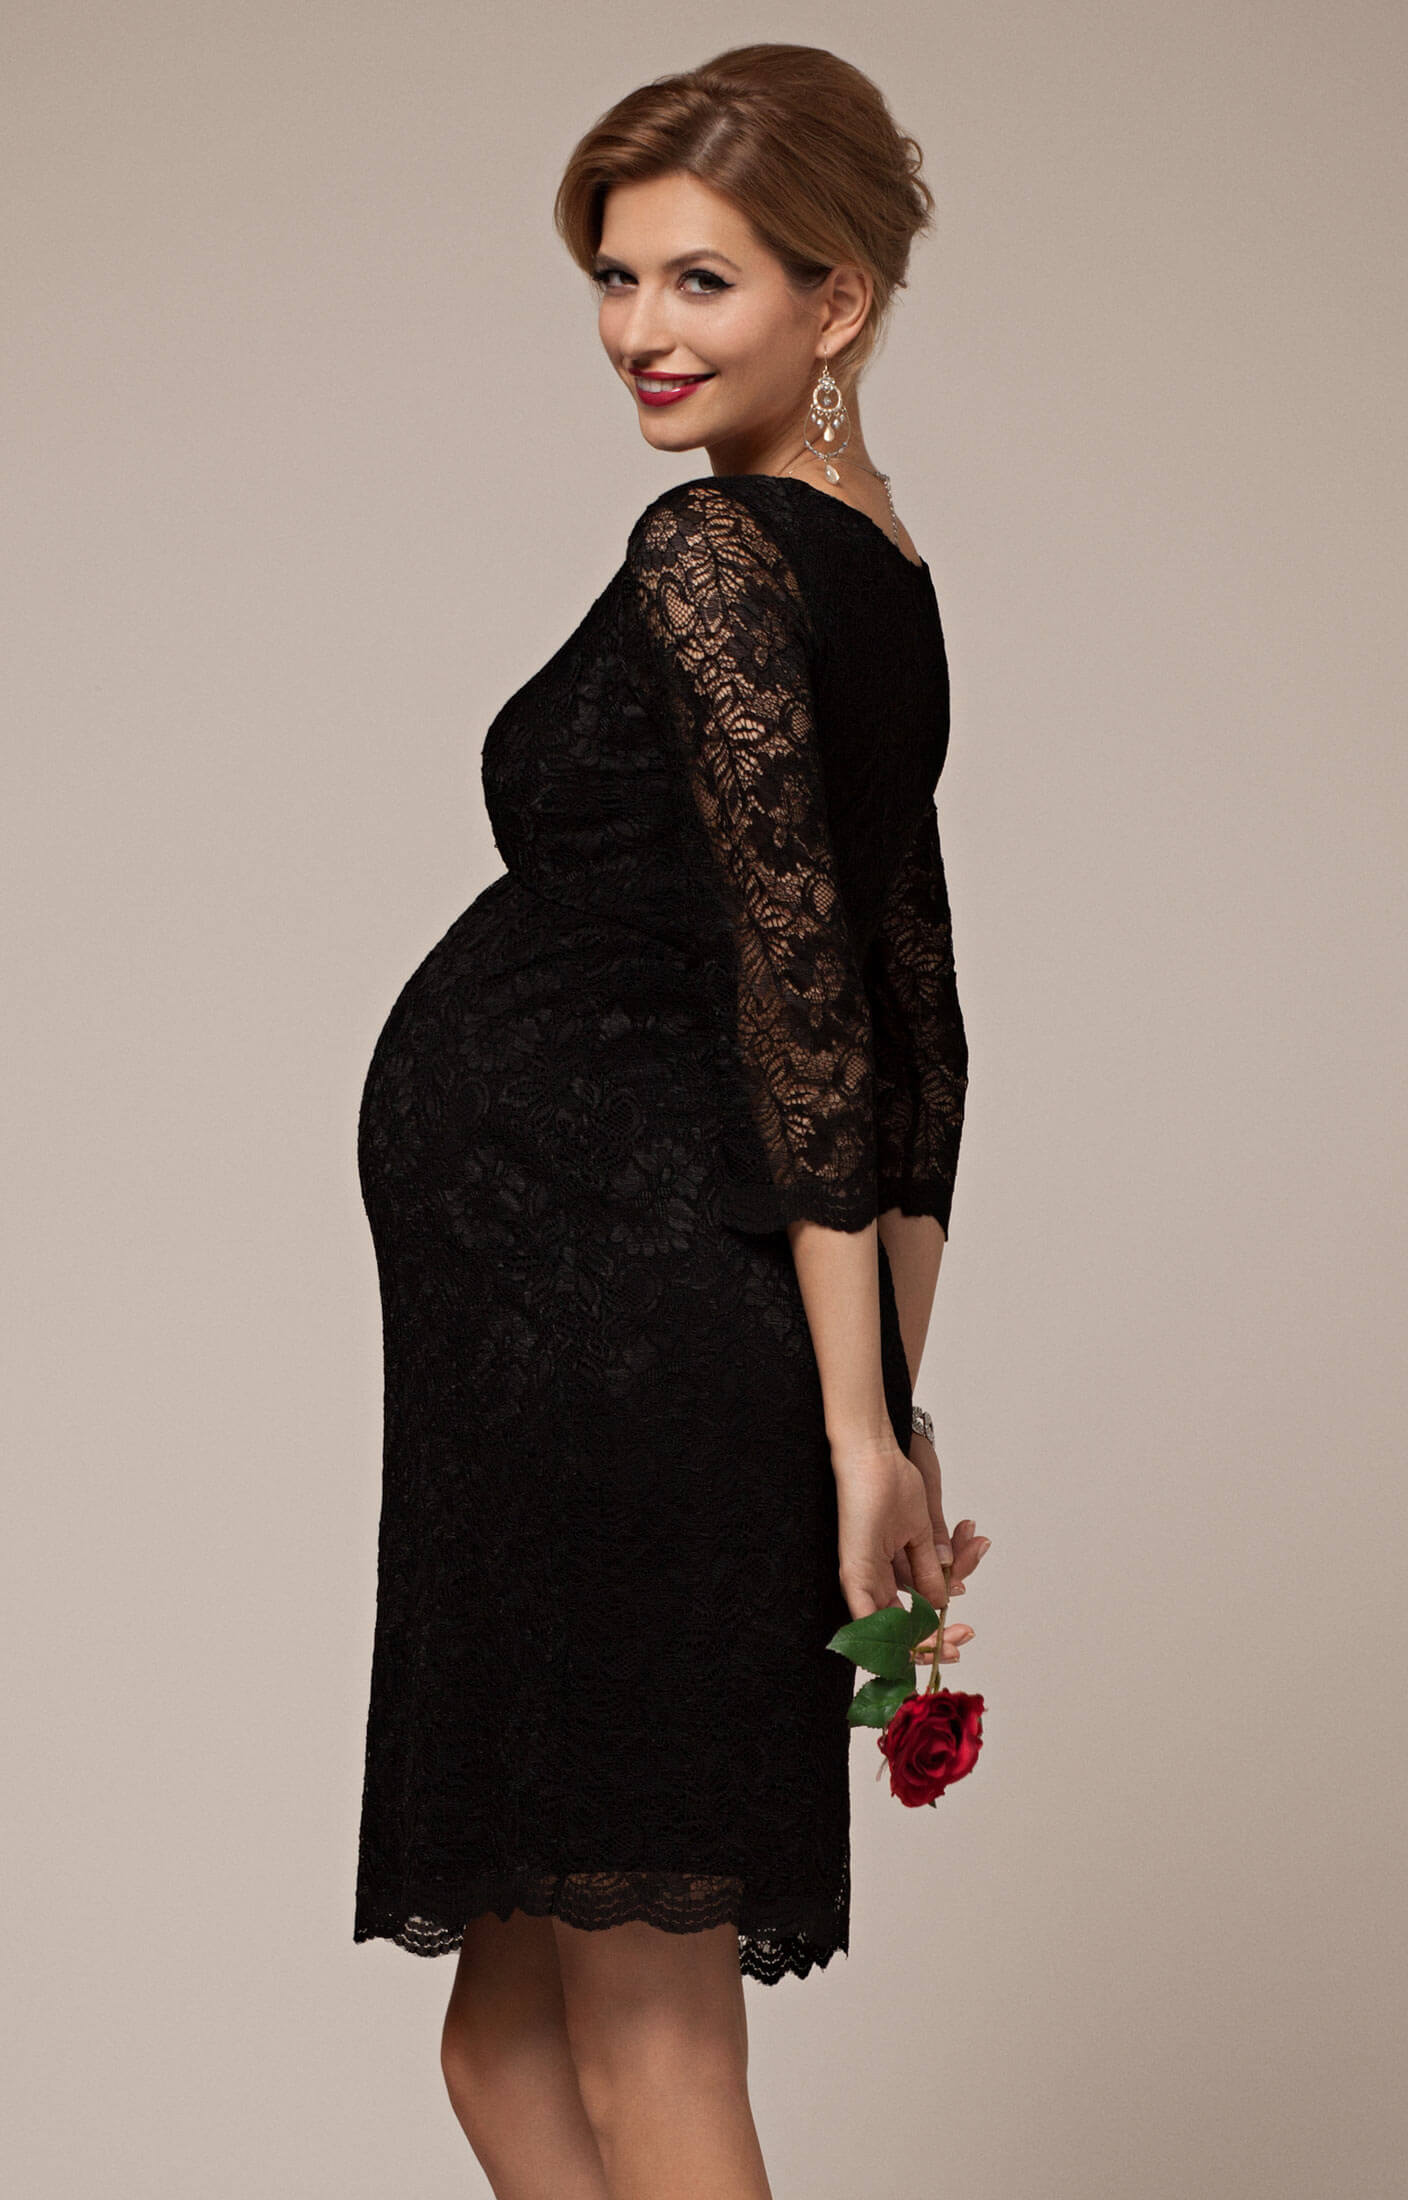 Chloe lace maternity dress black maternity wedding dresses chloe lace maternity dress black maternity wedding dresses evening wear and party clothes by tiffany rose ombrellifo Image collections